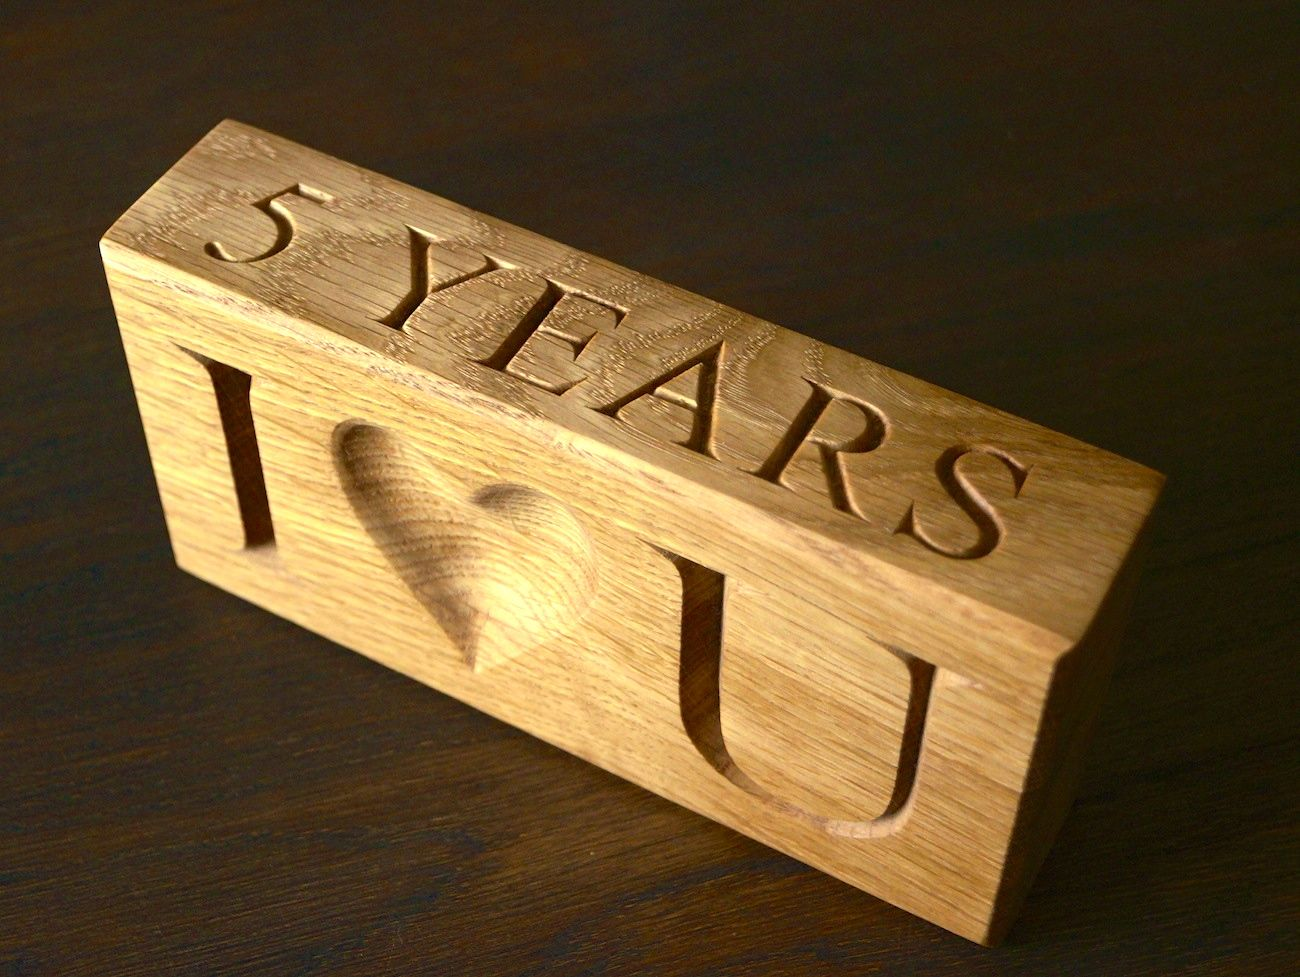 Holidays and Observances for Mar 21 2015 Wood